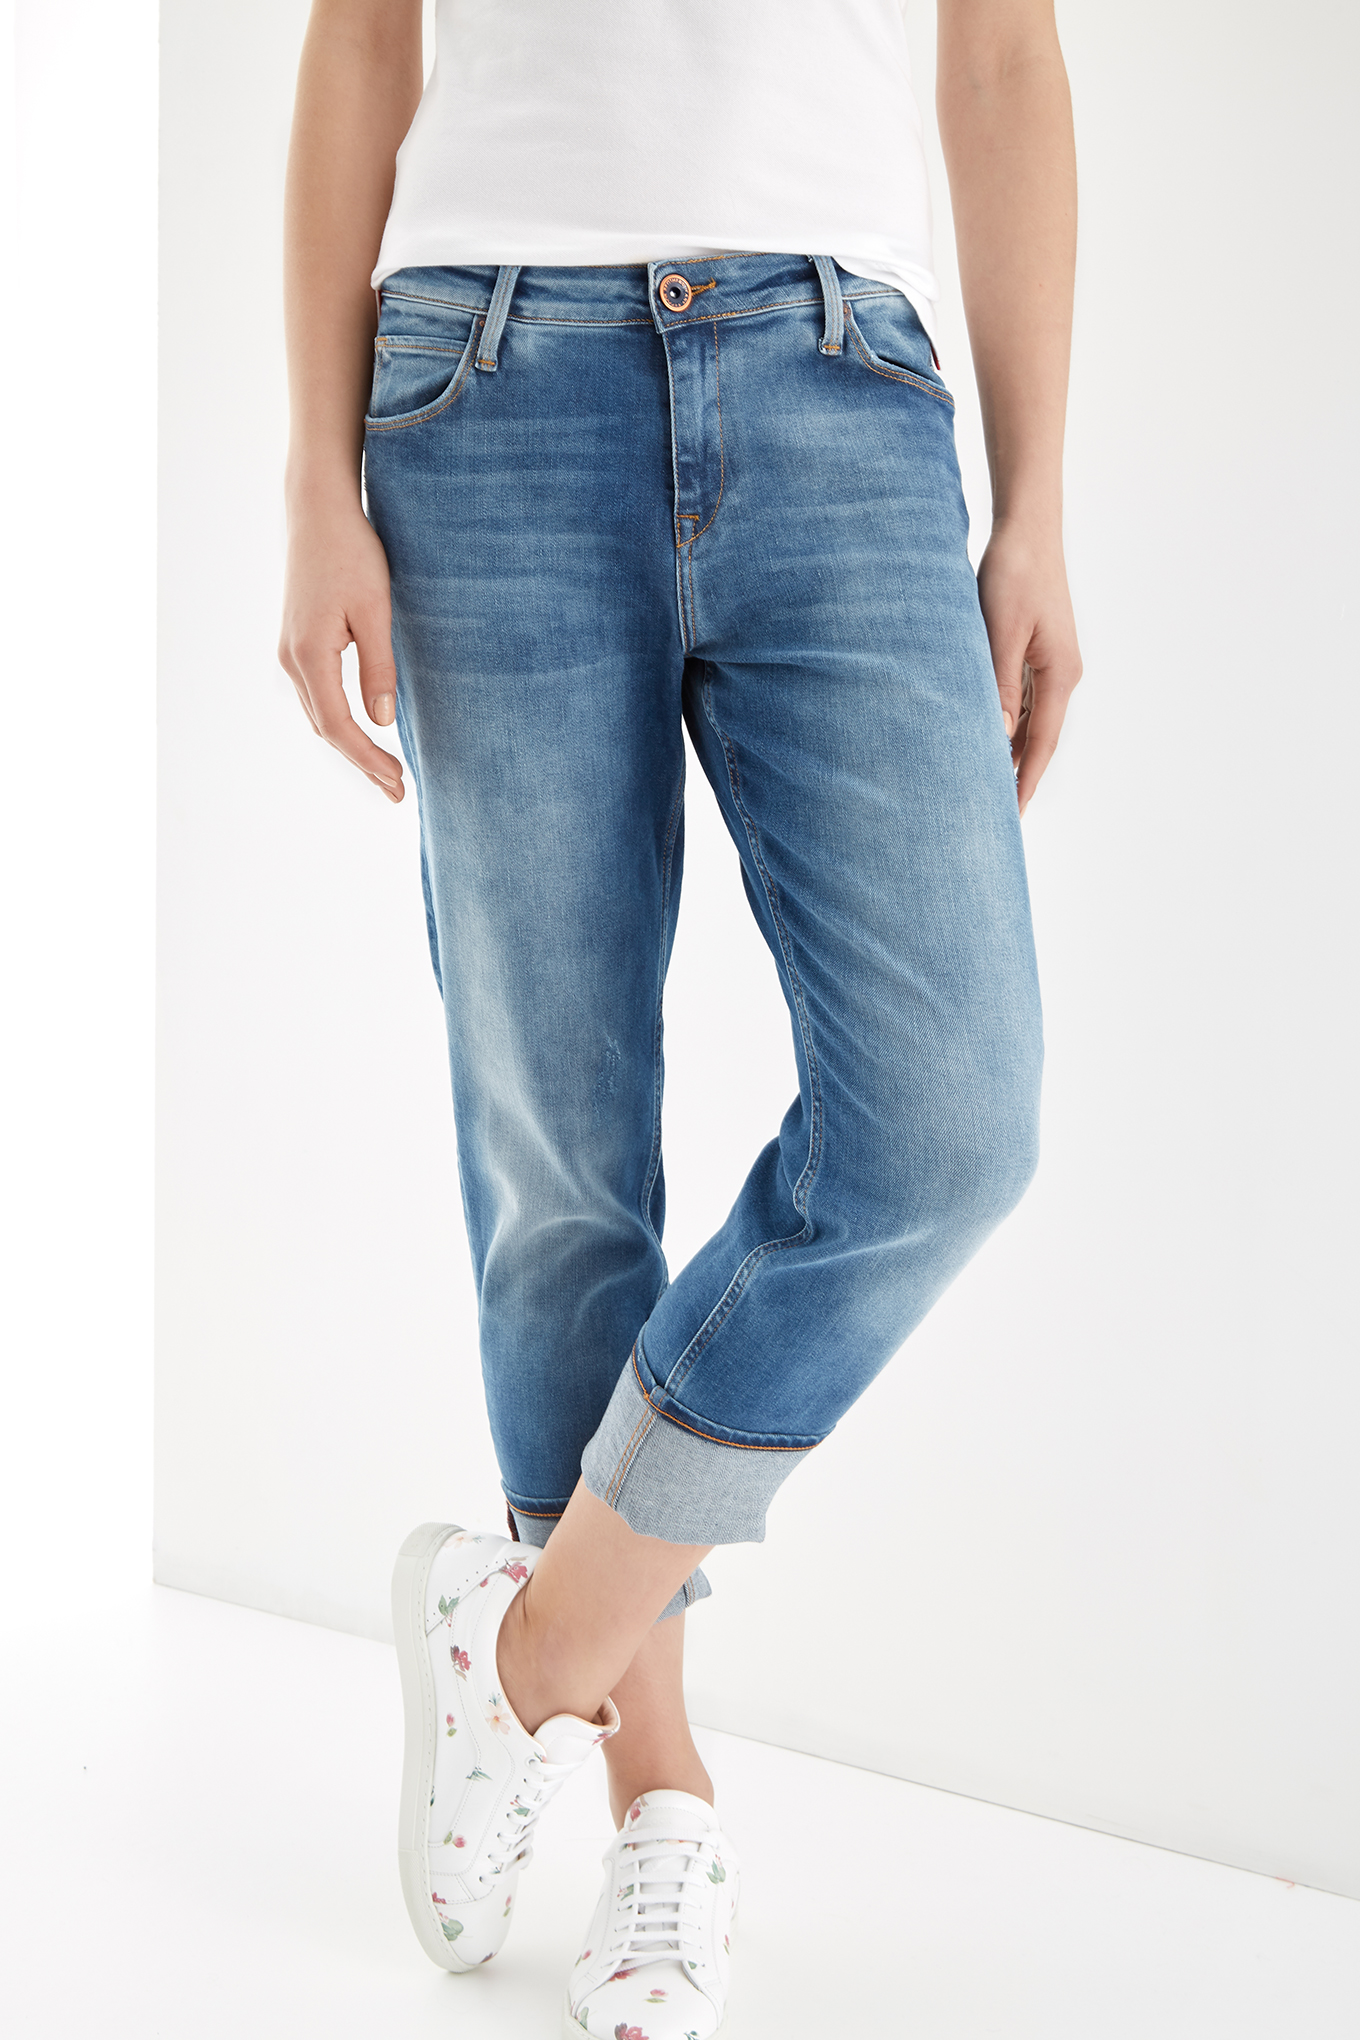 Jeans Light Blue Sport Woman